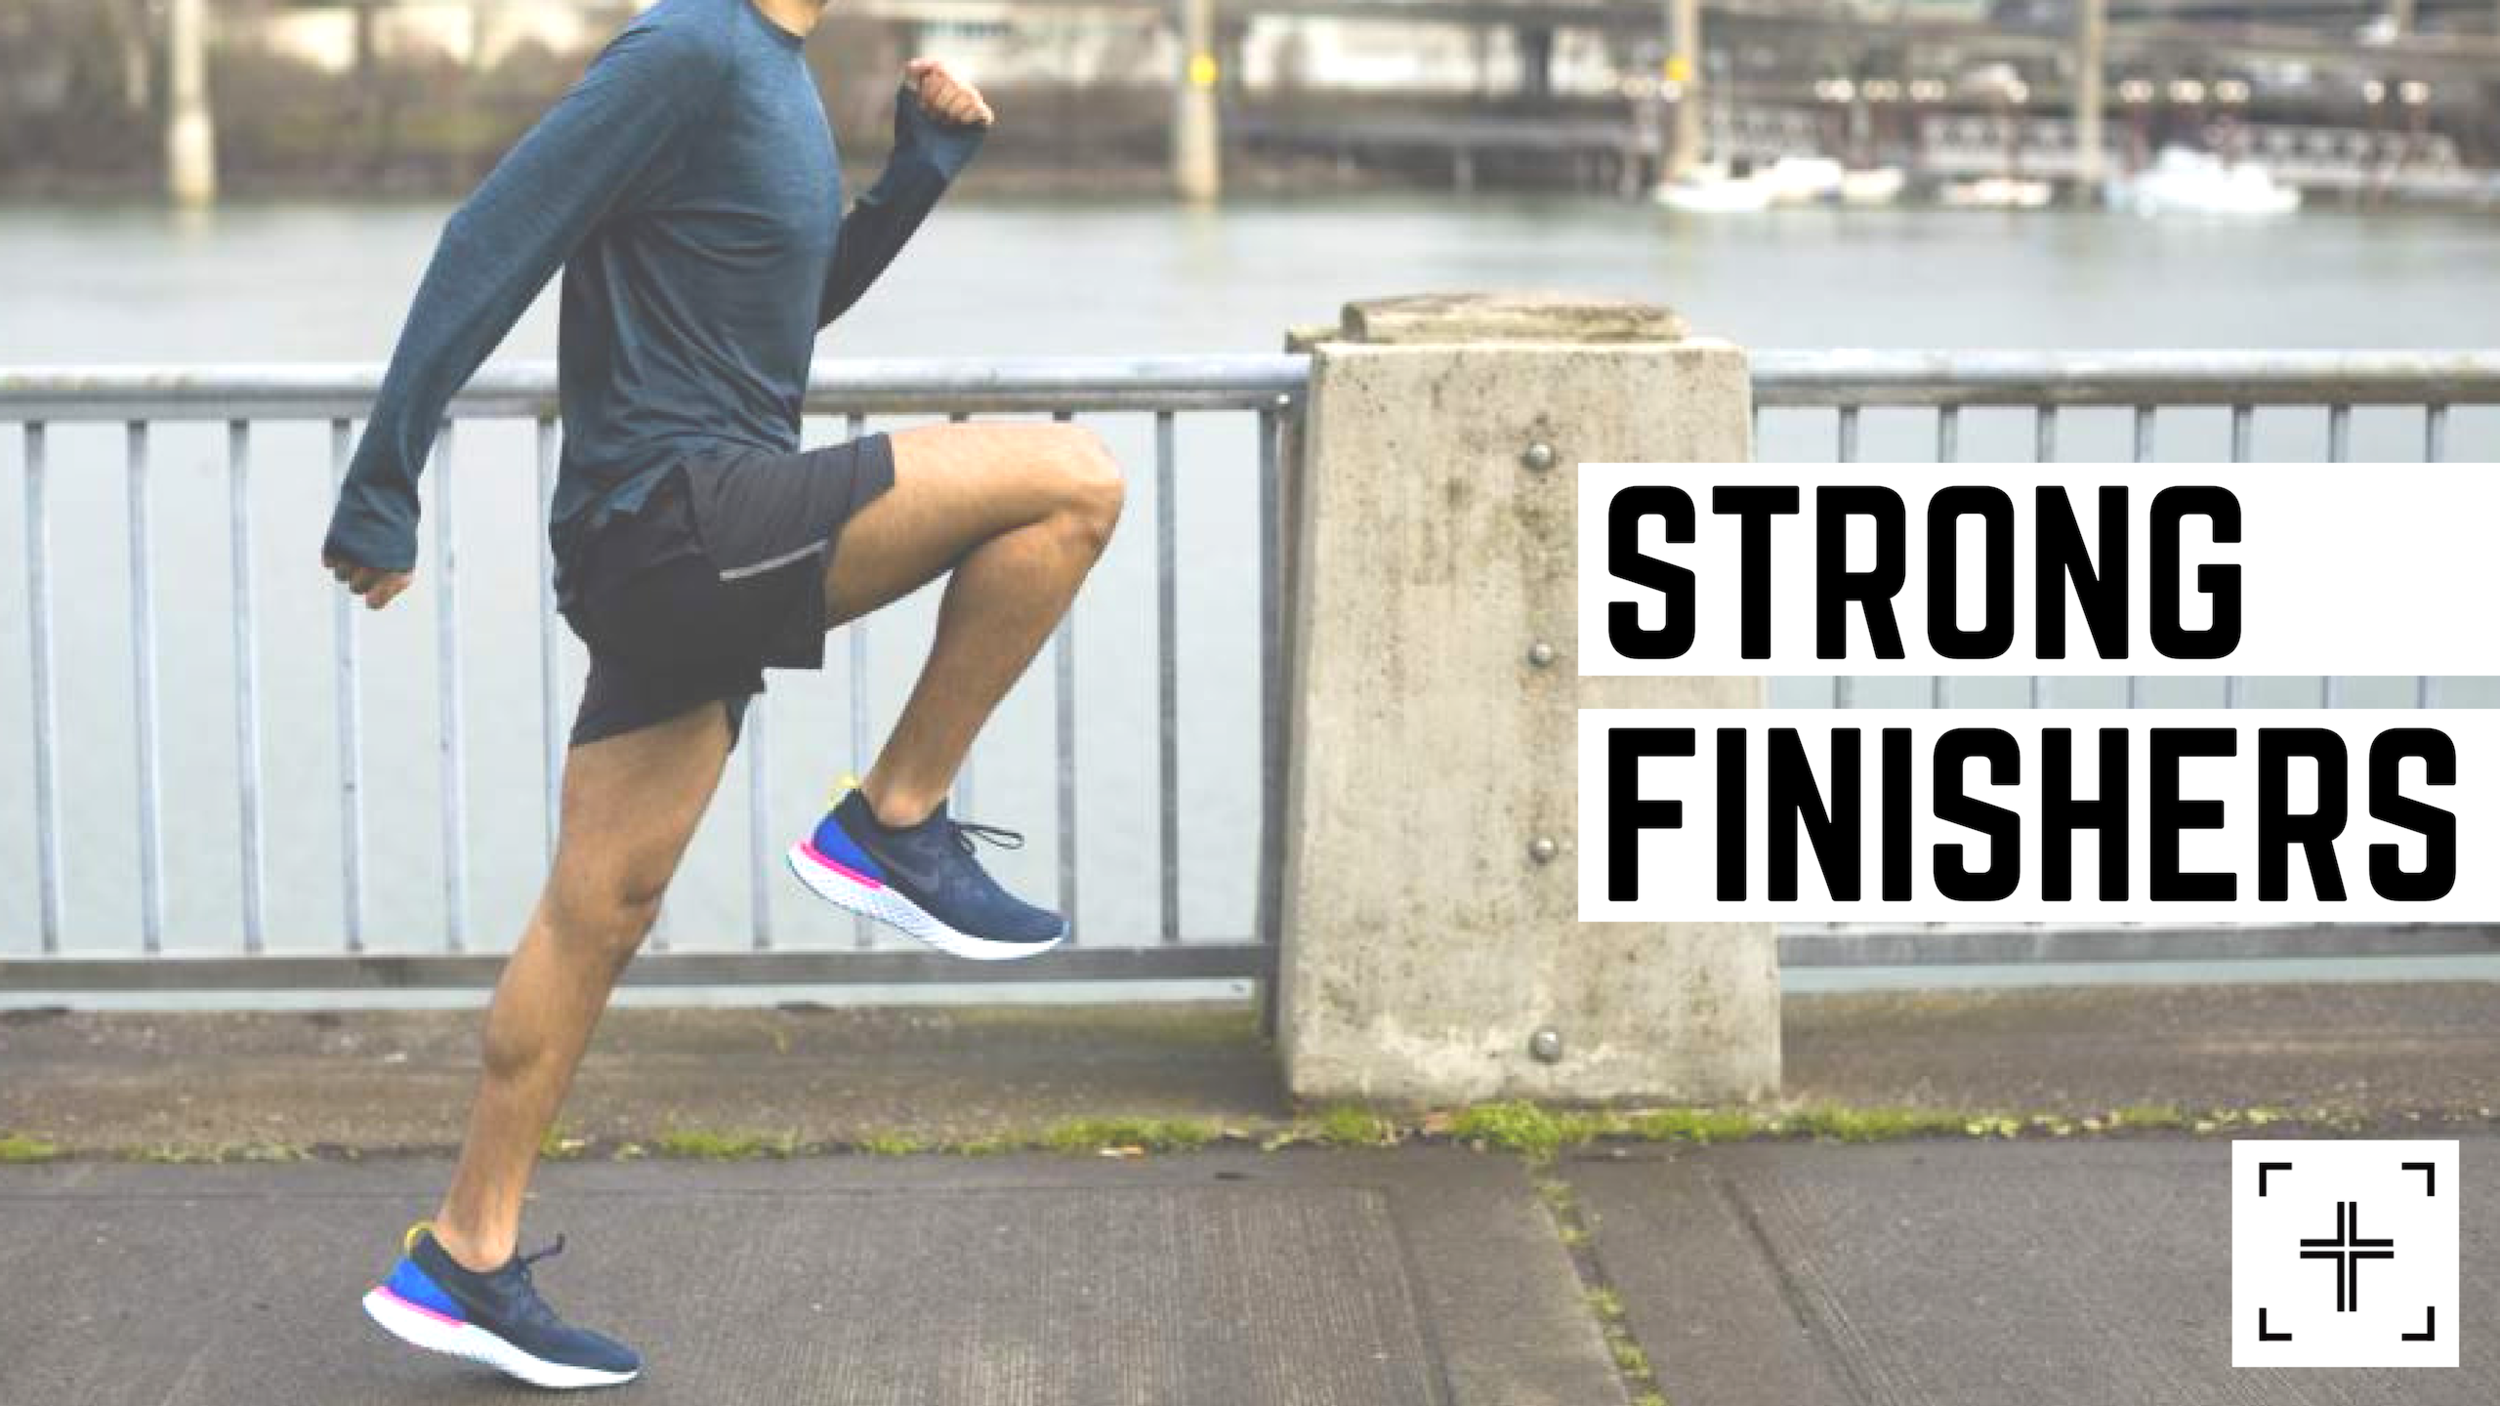 strong finishers title.PNG